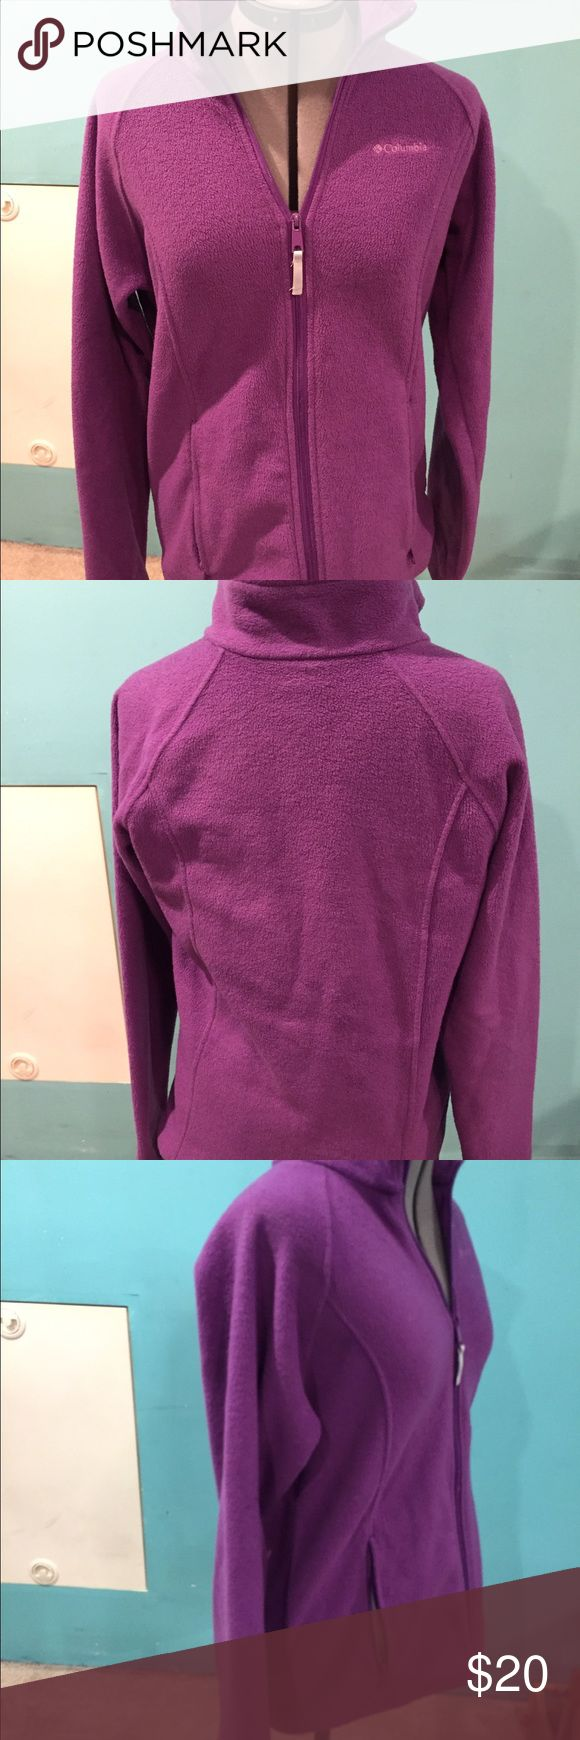 Women's purple Columbia jacket XL. Great condition This jacket is purple, zips up the front, it is soft and cozy size XL. See pictures. Used and in Great condition. Columbia Jackets & Coats Utility Jackets